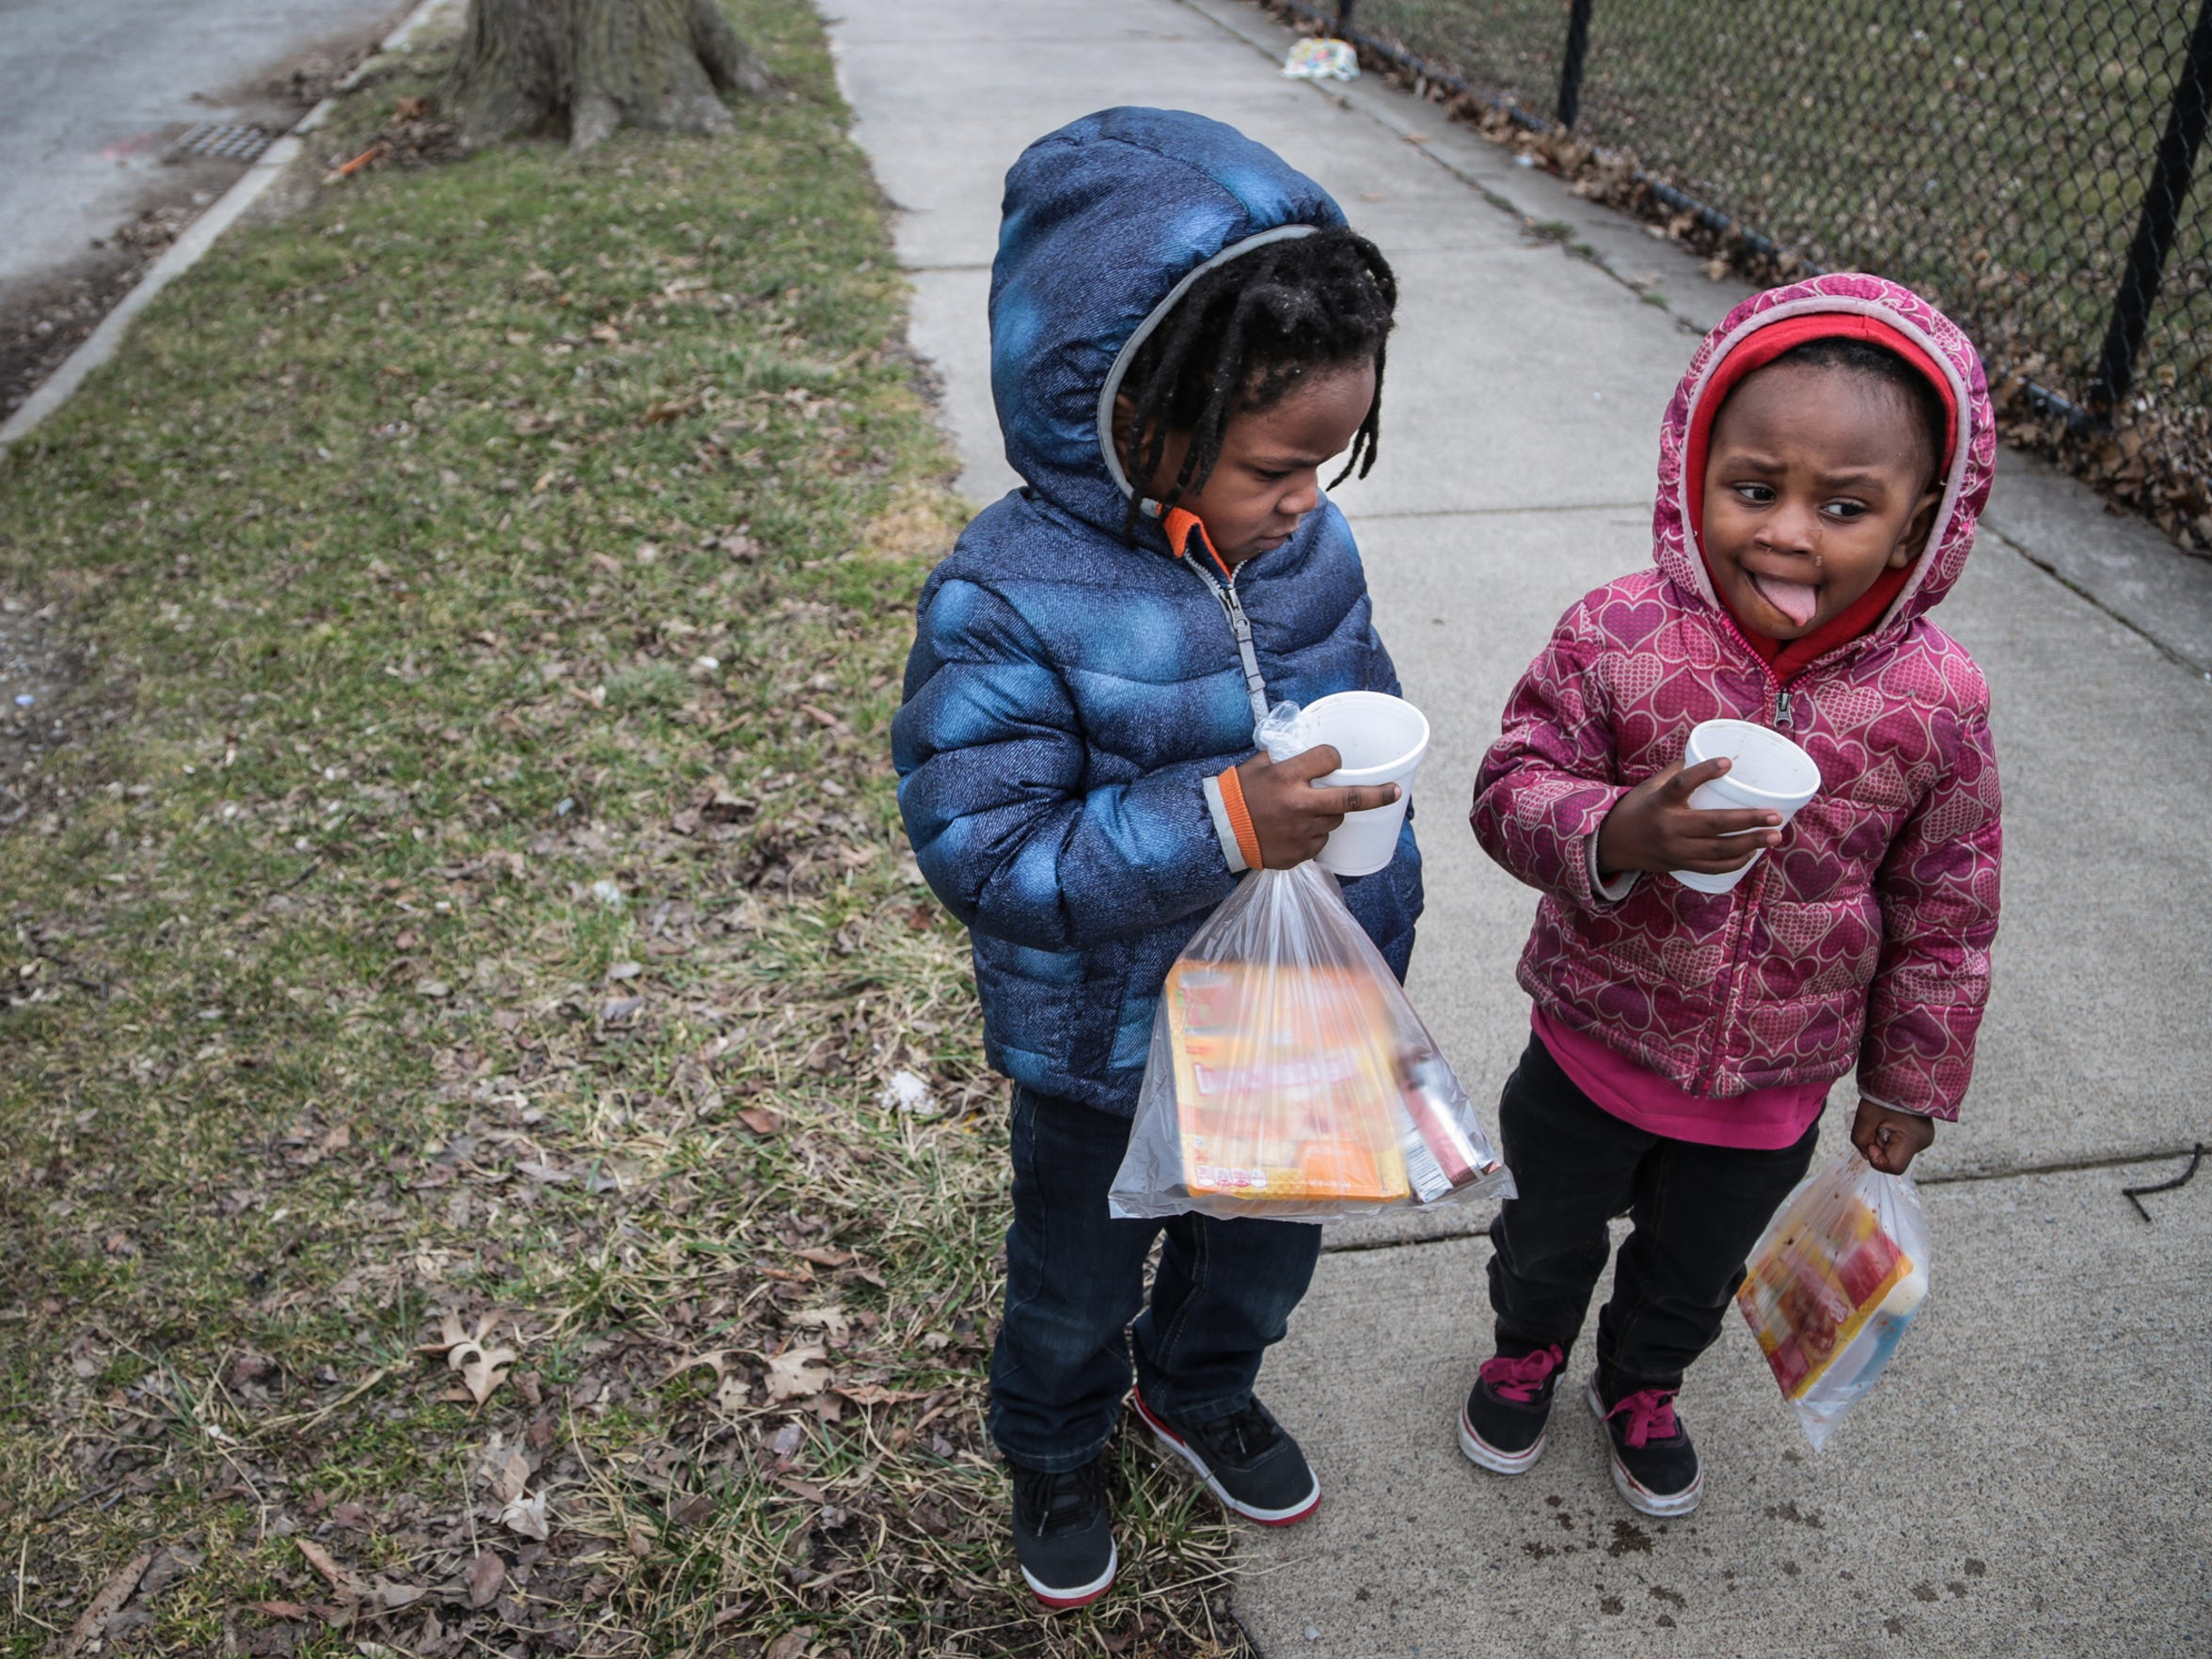 Miyake Young, 3, of Detroit, and his sister Malaysia Foley, 2, of Detroit, get their hot chocolate and bagged lunch from the Salvation Army's Bed and Bread program food truck on Detroit's east side. The truck brings meals every day of the year to several dozen stops in Detroit's poorest neighborhoods.